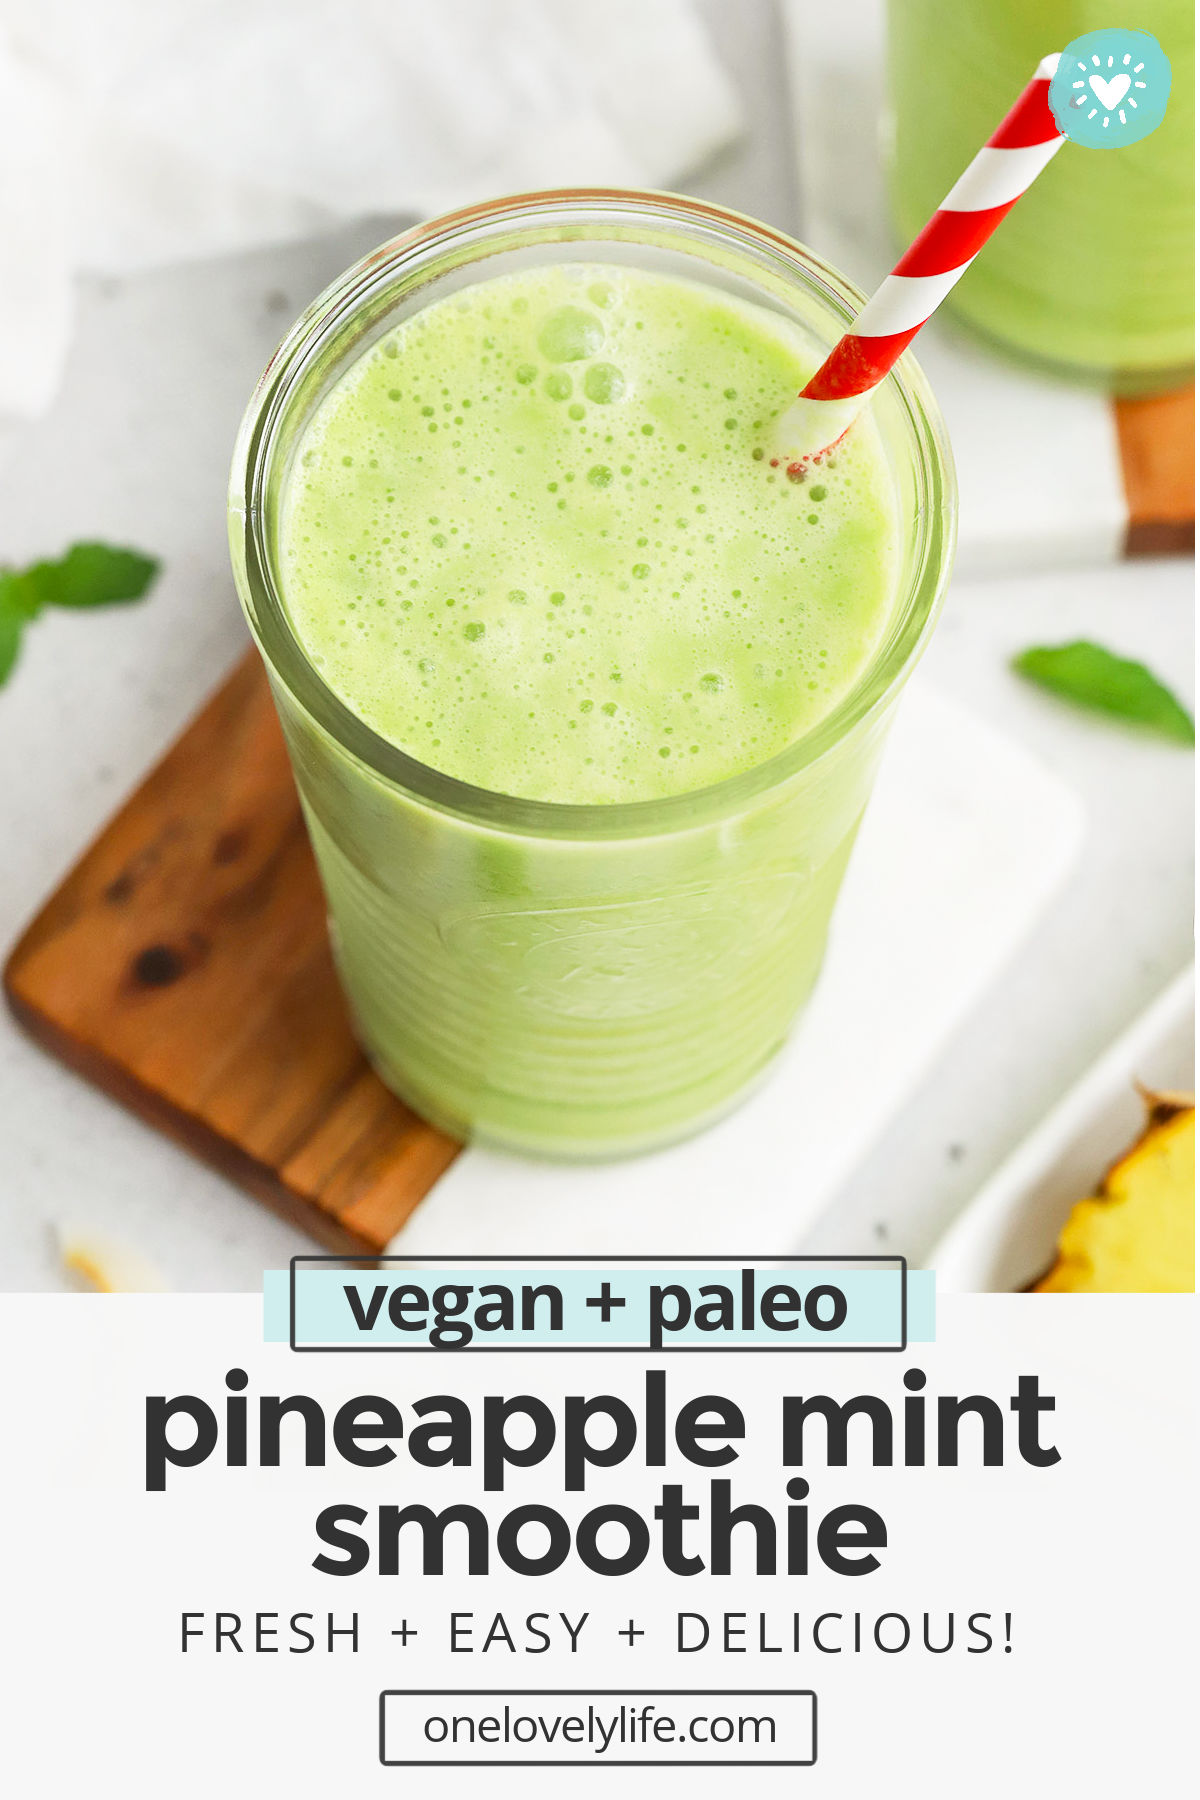 Pineapple Mint Smoothie - This light, fresh pineapple smoothie makes a beautiful healthy breakfast or snack! A perfect kid-friendly green smoothie! (Vegan, Paleo) // Vegan pineapple smoothie // paleo pineapple smoothie // kid friendly green smoothie // green smoothie #smoothie #greensmoothie #vegan #healthybreakfast #healthysnack #paleo